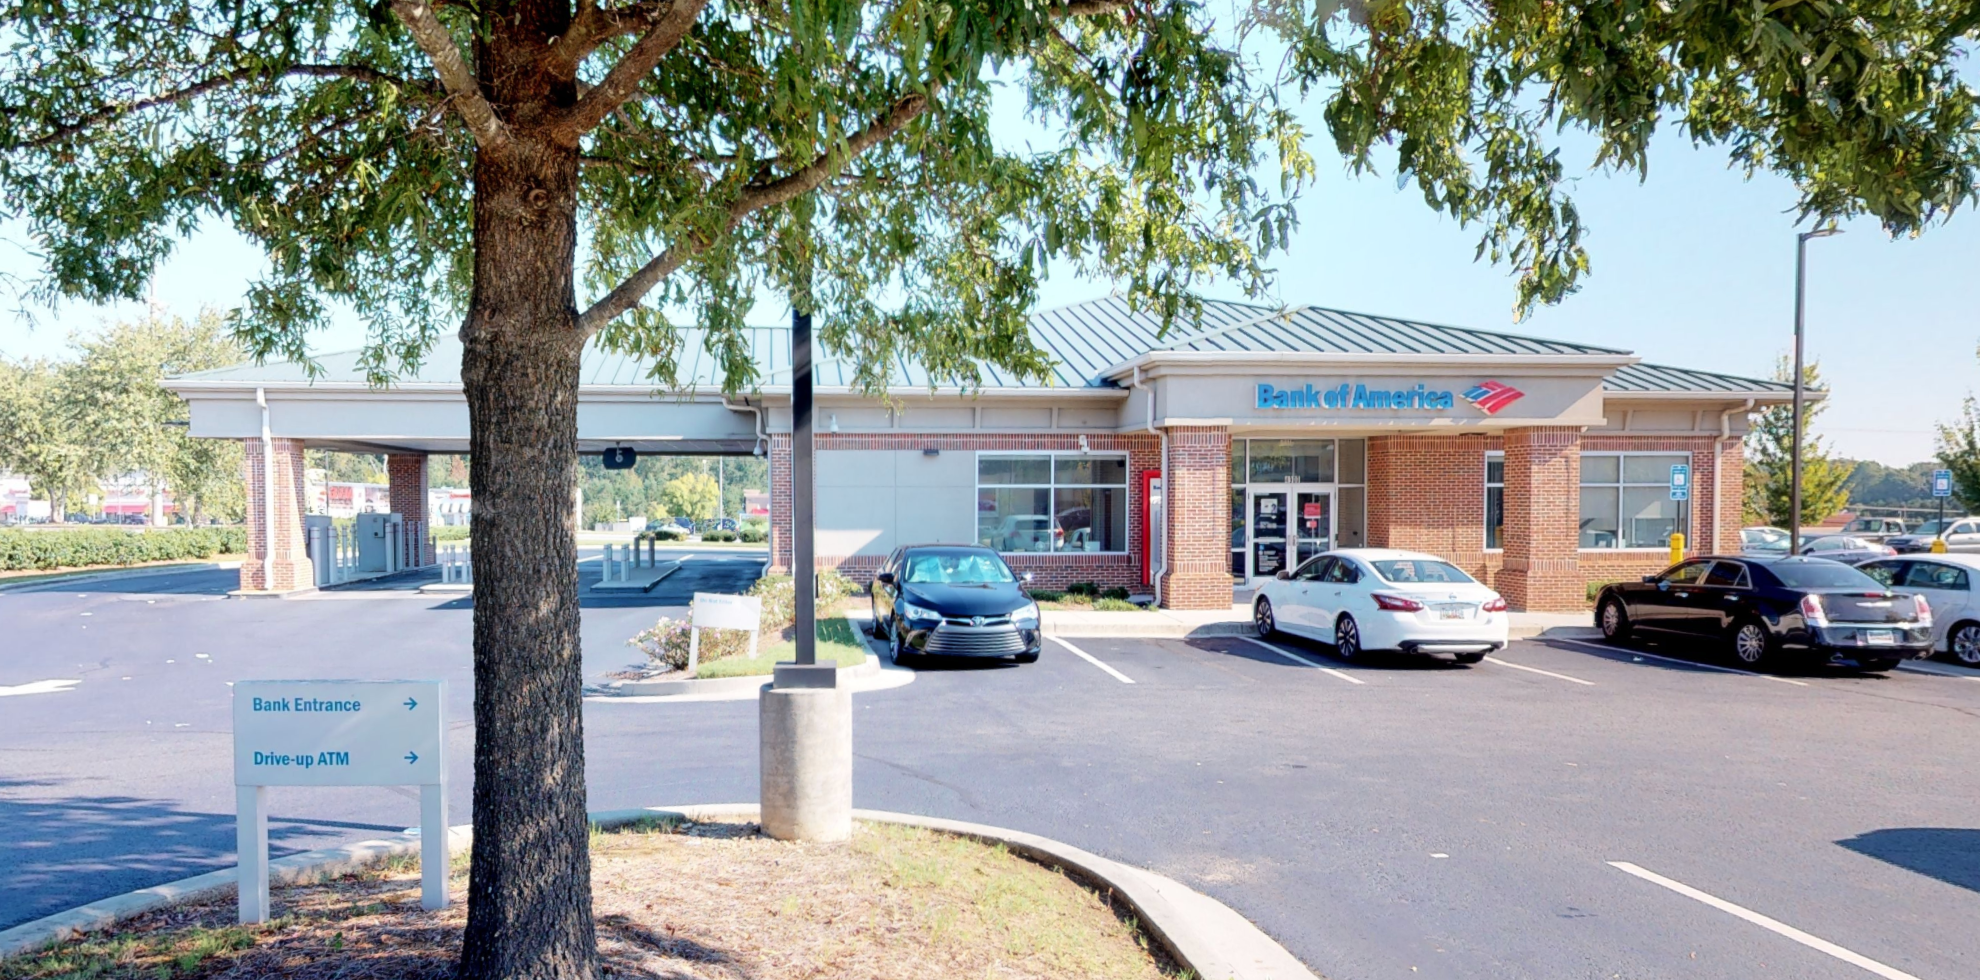 Bank of America financial center with drive-thru ATM   4900 Jimmy Lee Smith Pkwy, Hiram, GA 30141